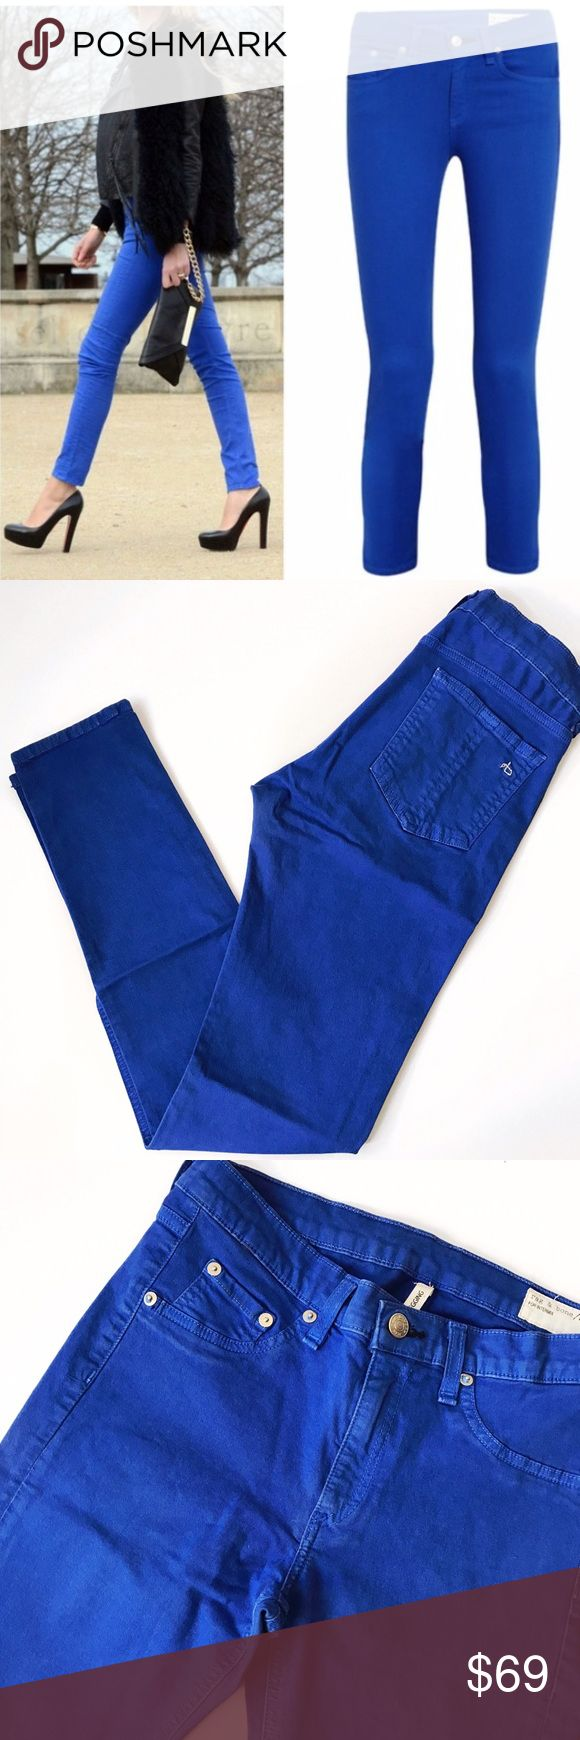 ➡rag & bone Electric Blue Legging Jeans⬅ Form fitting soft jeans in a gorgeous color that will give your closet a bright pop of color. 💕Offers welcome. Take 30% off your entire purchase automatically at checkout when you use the bundle feature, or make an offer for your bundle. Happy Poshing!💕 rag & bone Jeans Skinny